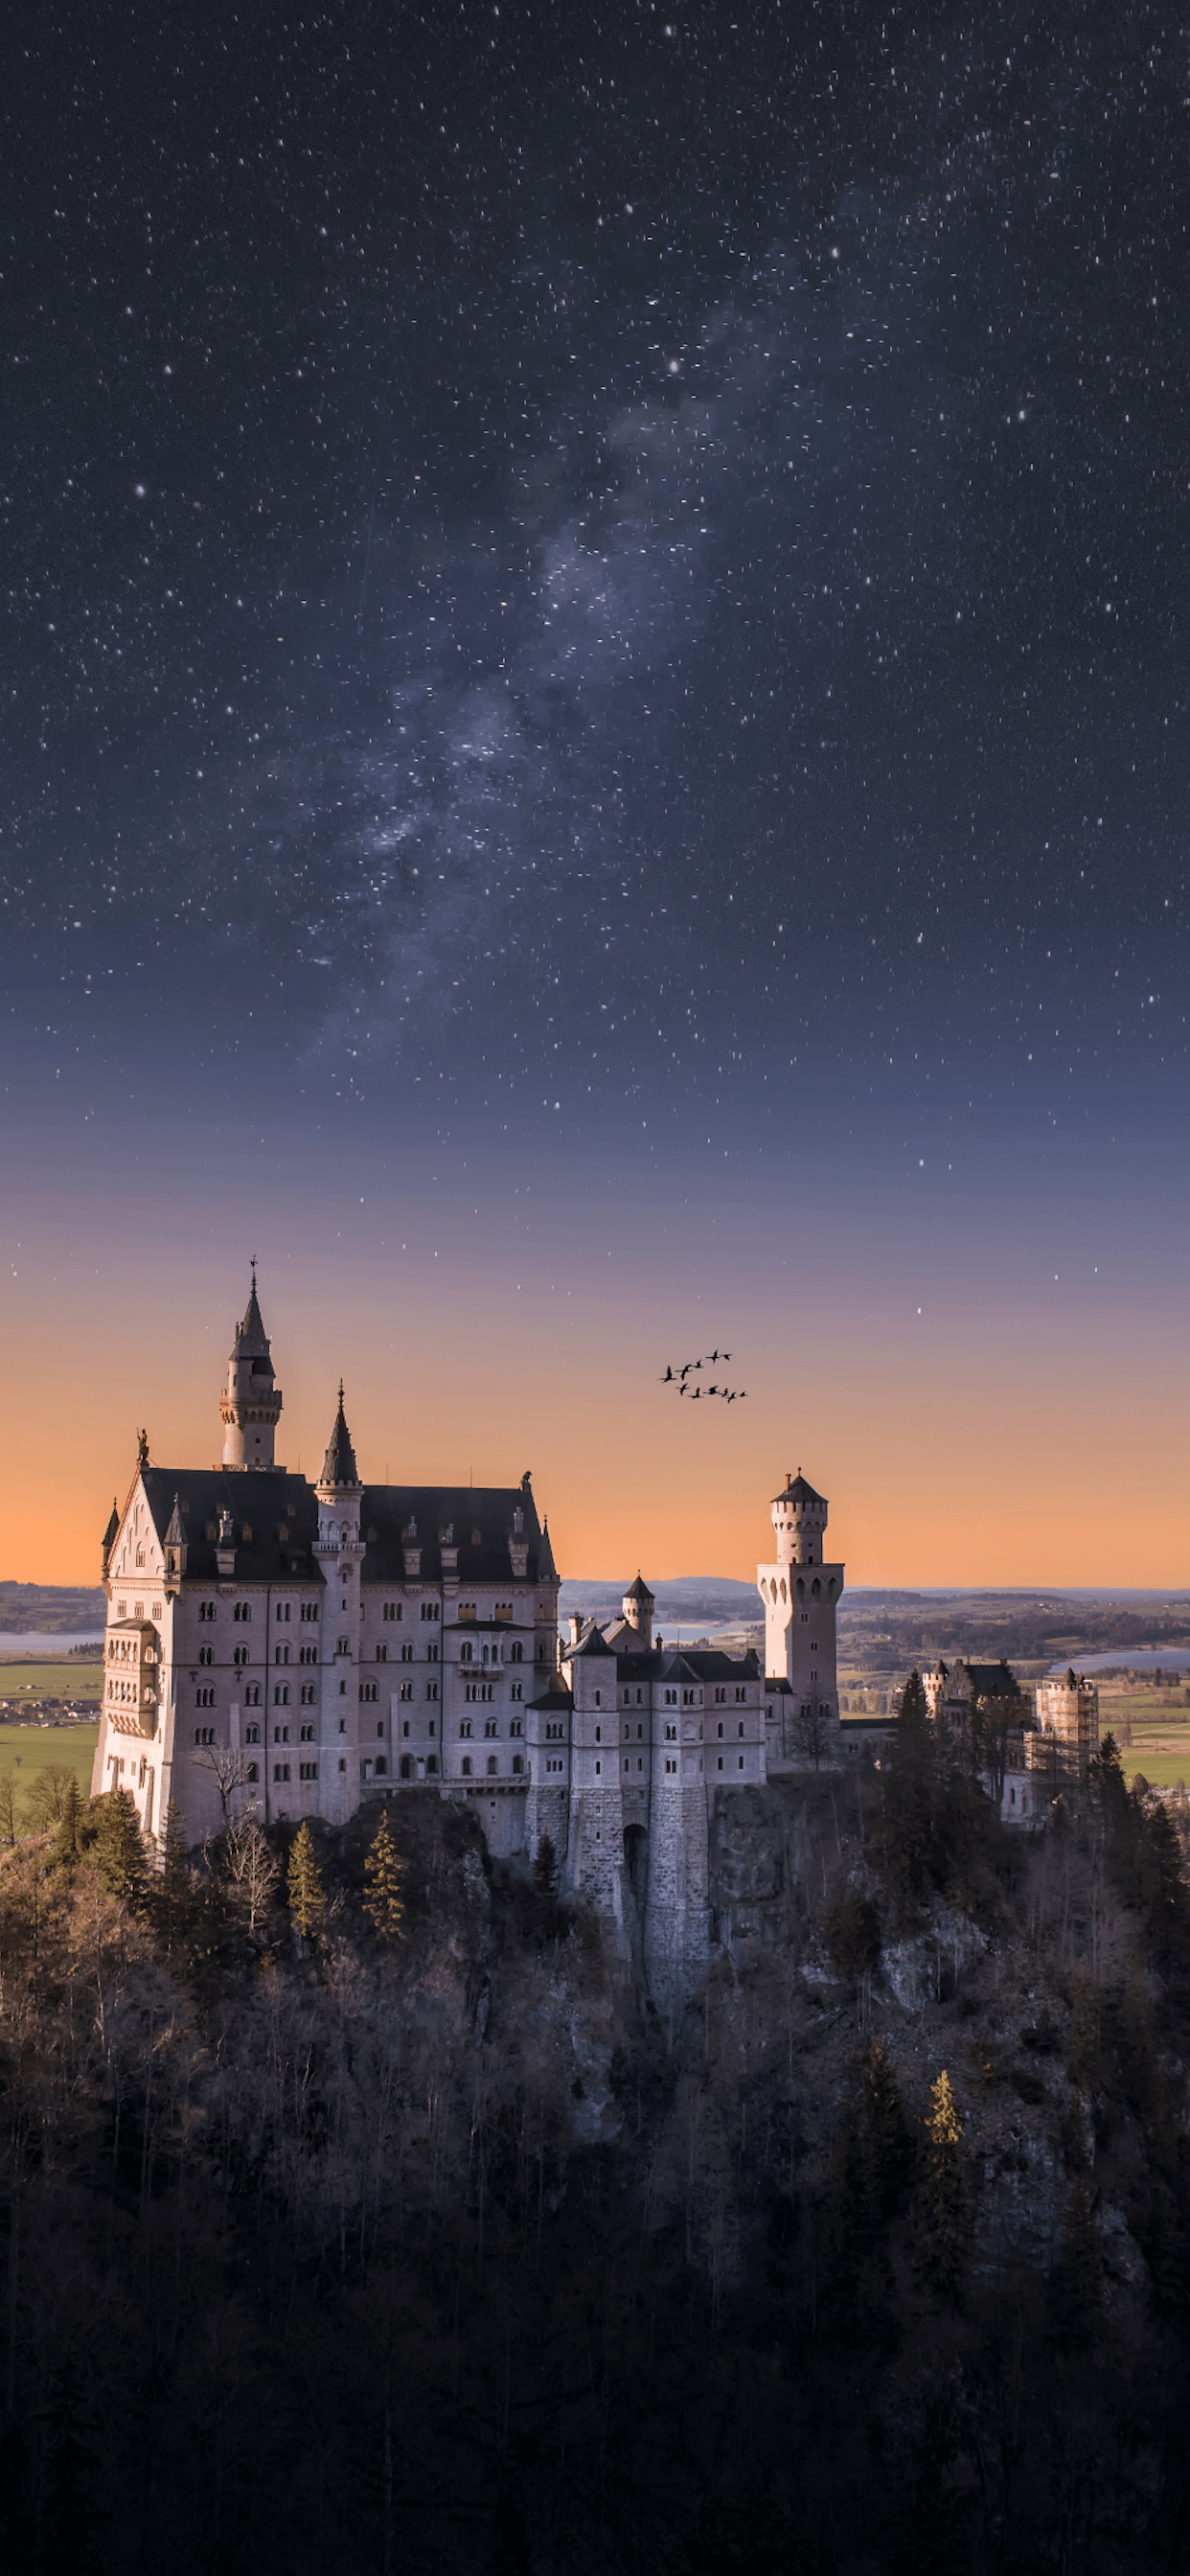 iPhone wallpapers stars neuschwanstein Stars